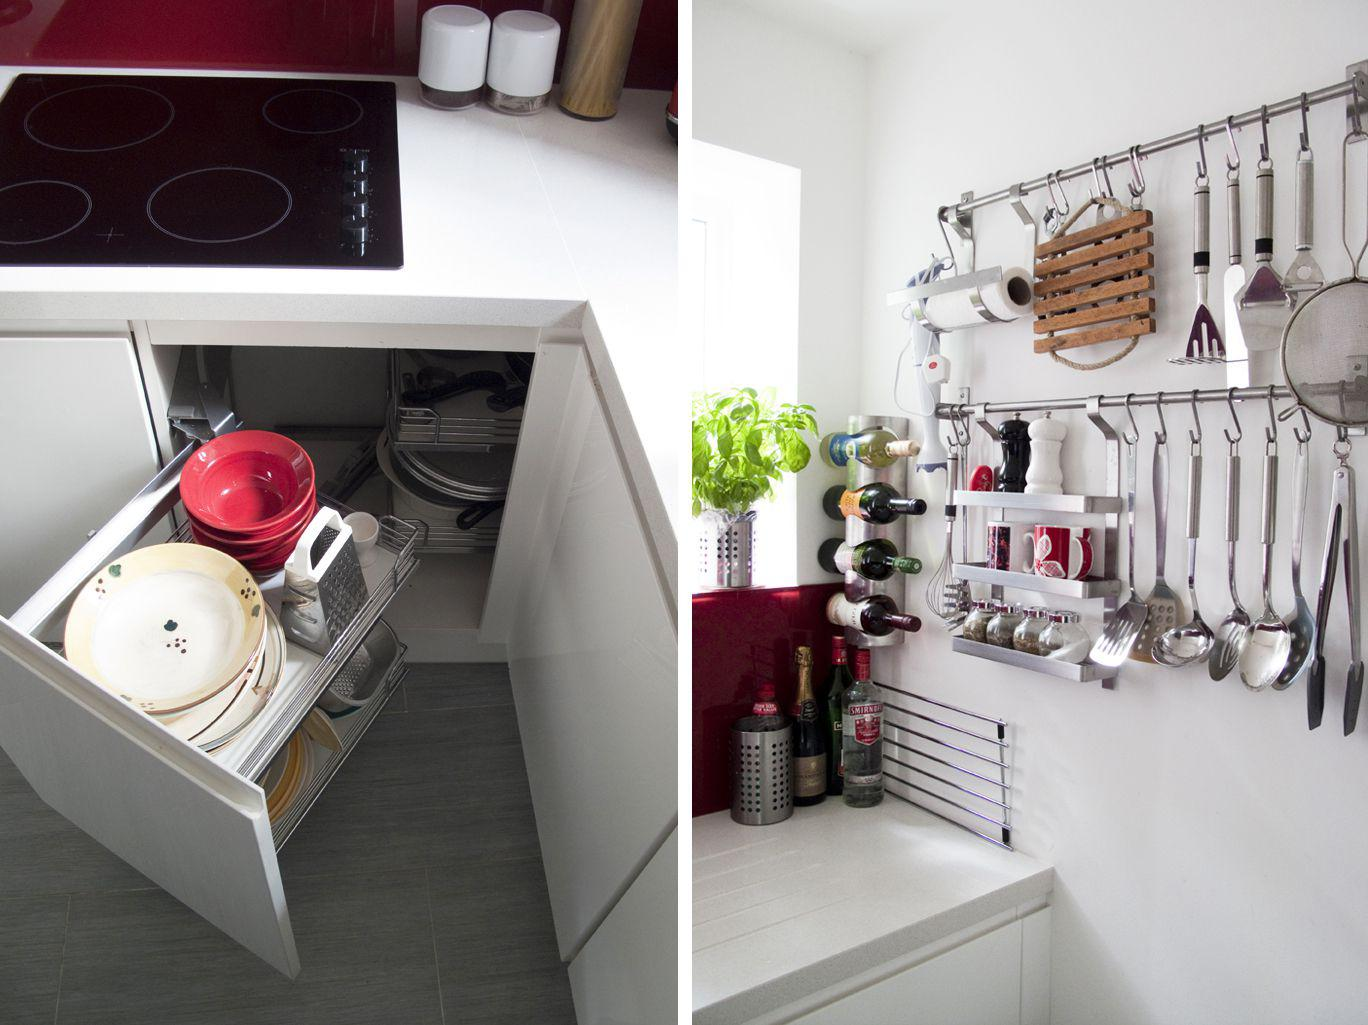 Organizing Kitchen Storage Systems and Pantry for Ultimate Comfort. Originally organized corner box